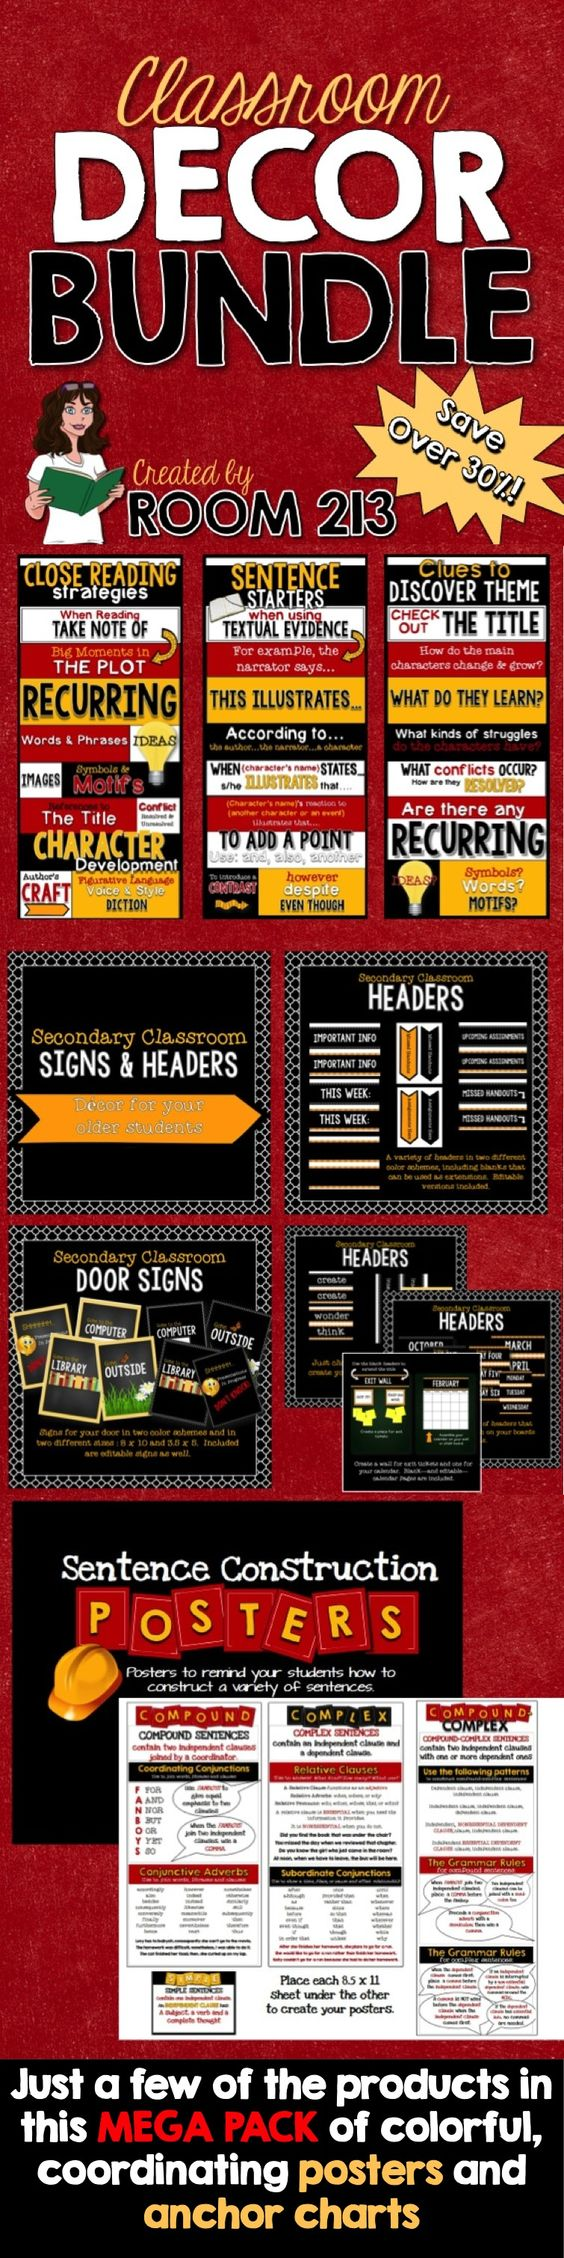 Classroom Decor Bundles ~ Classroom decor bundle student anchor charts and style